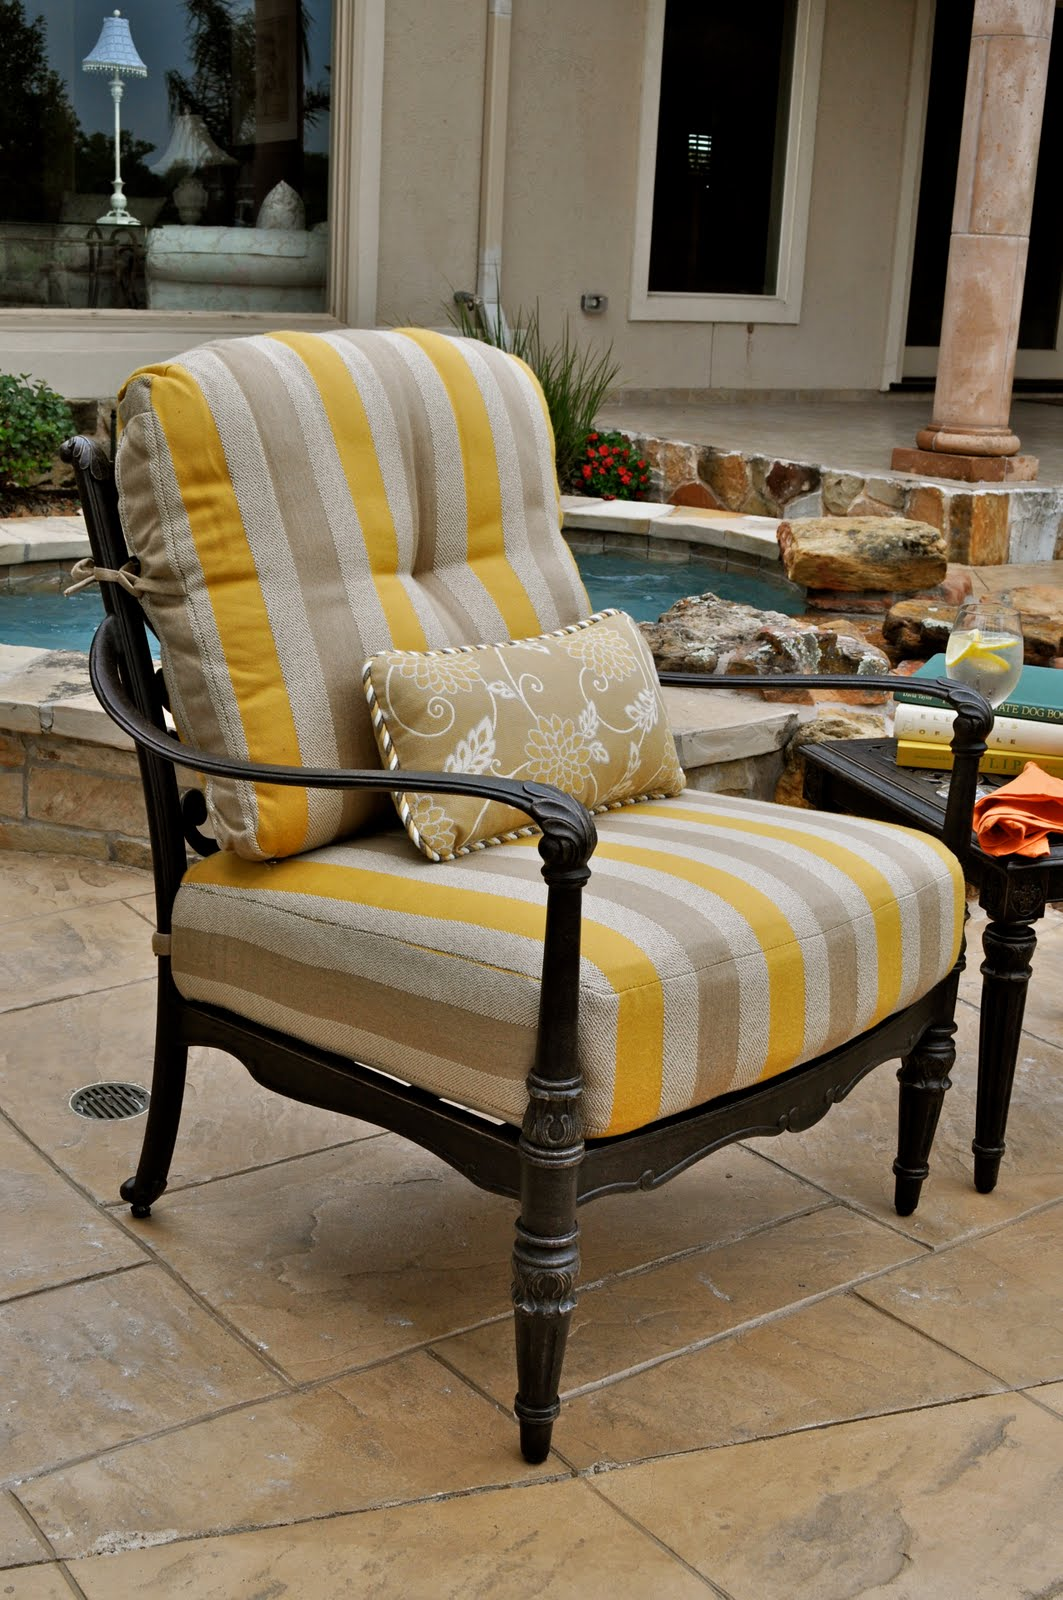 Besides The Beautifully Detailed Finish Of The Chair, We Love The Spacious,  Deep Seating Of This Club Chair. Extra Thick, Large Cushions Covered In ...